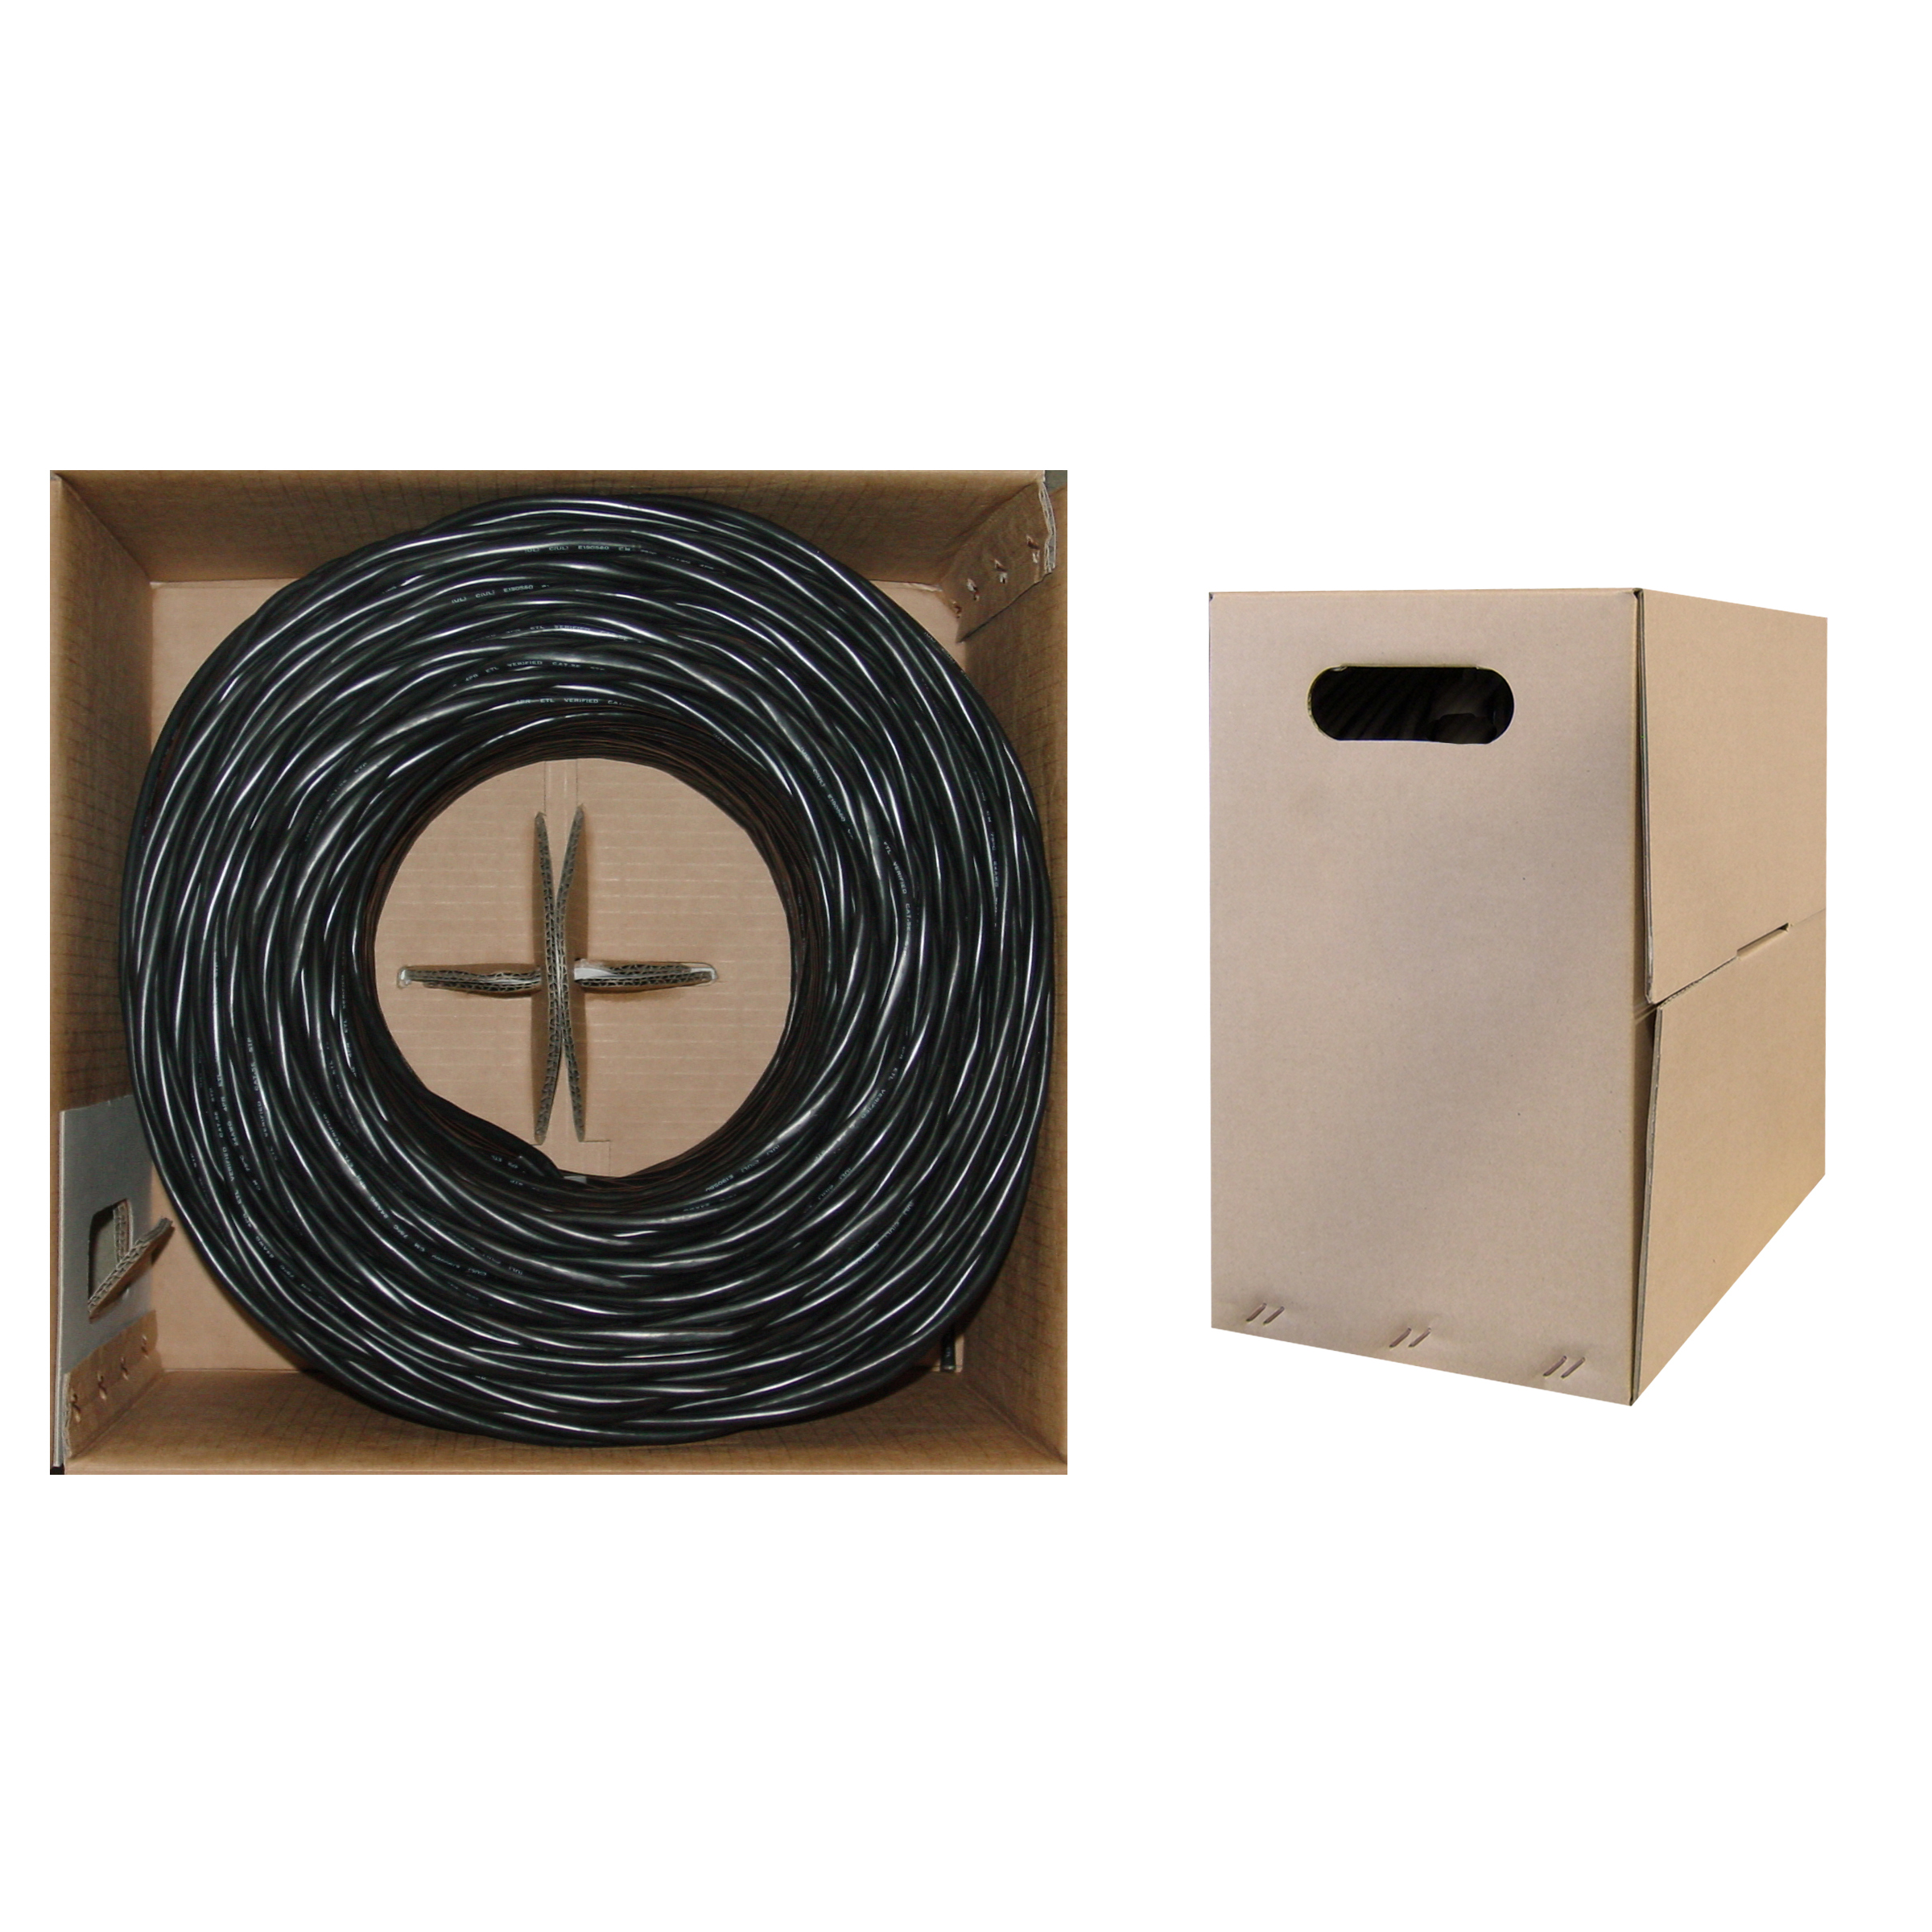 Cat5e Ethernet Cable Stranded Copper Black Pullbox 1000ft